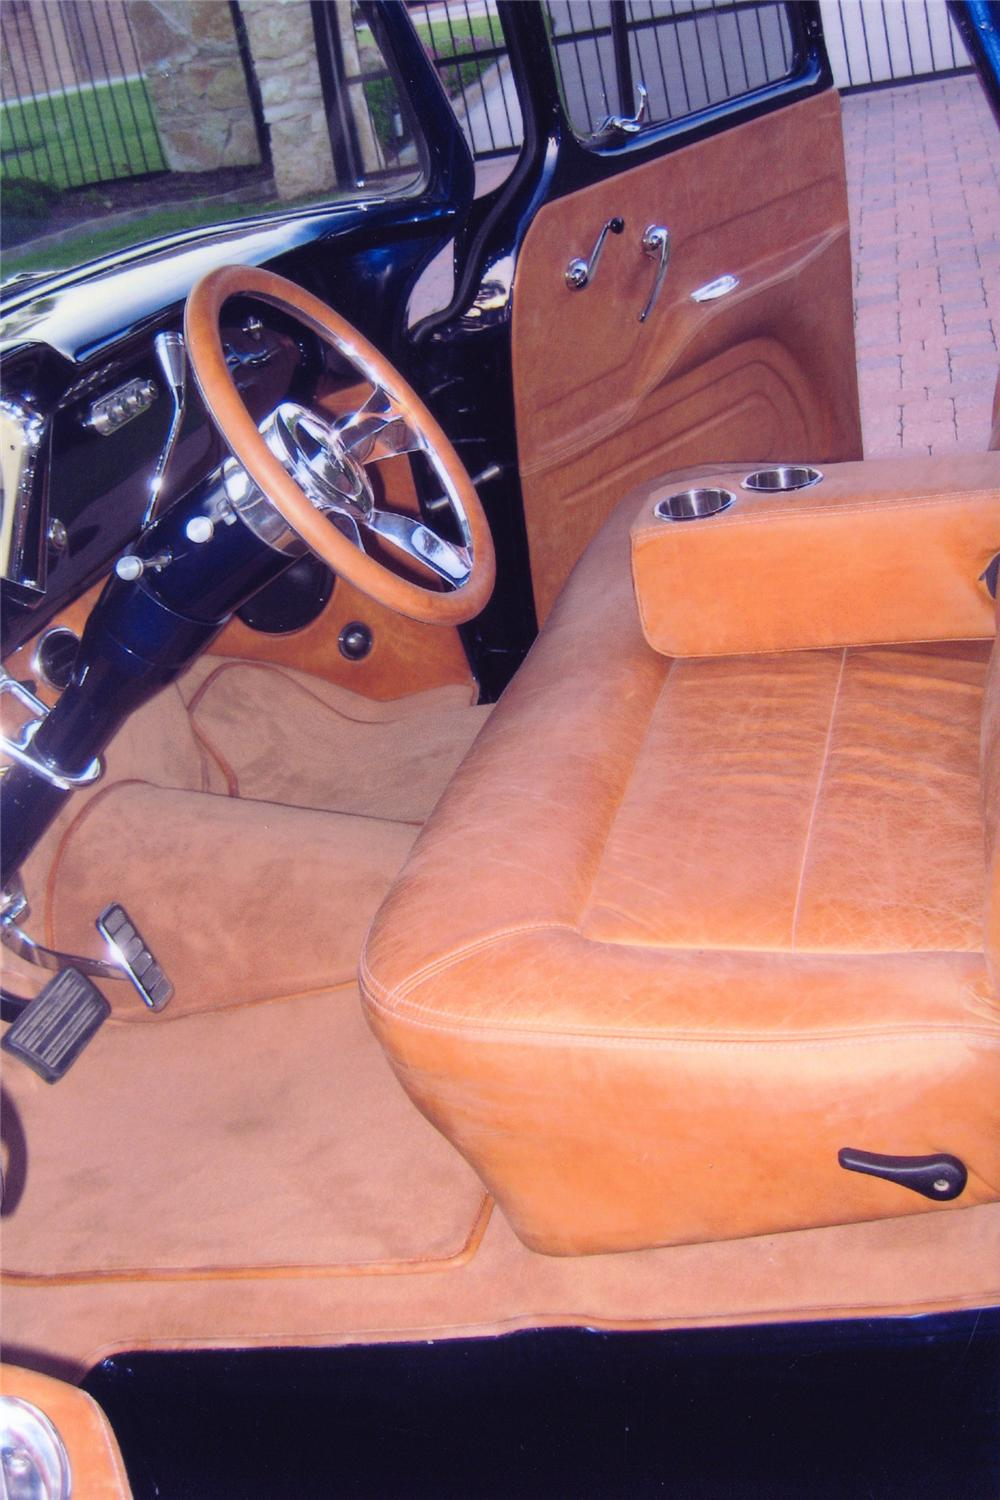 1955 CHEVROLET 3200 CUSTOM PICKUP - Interior - 82093